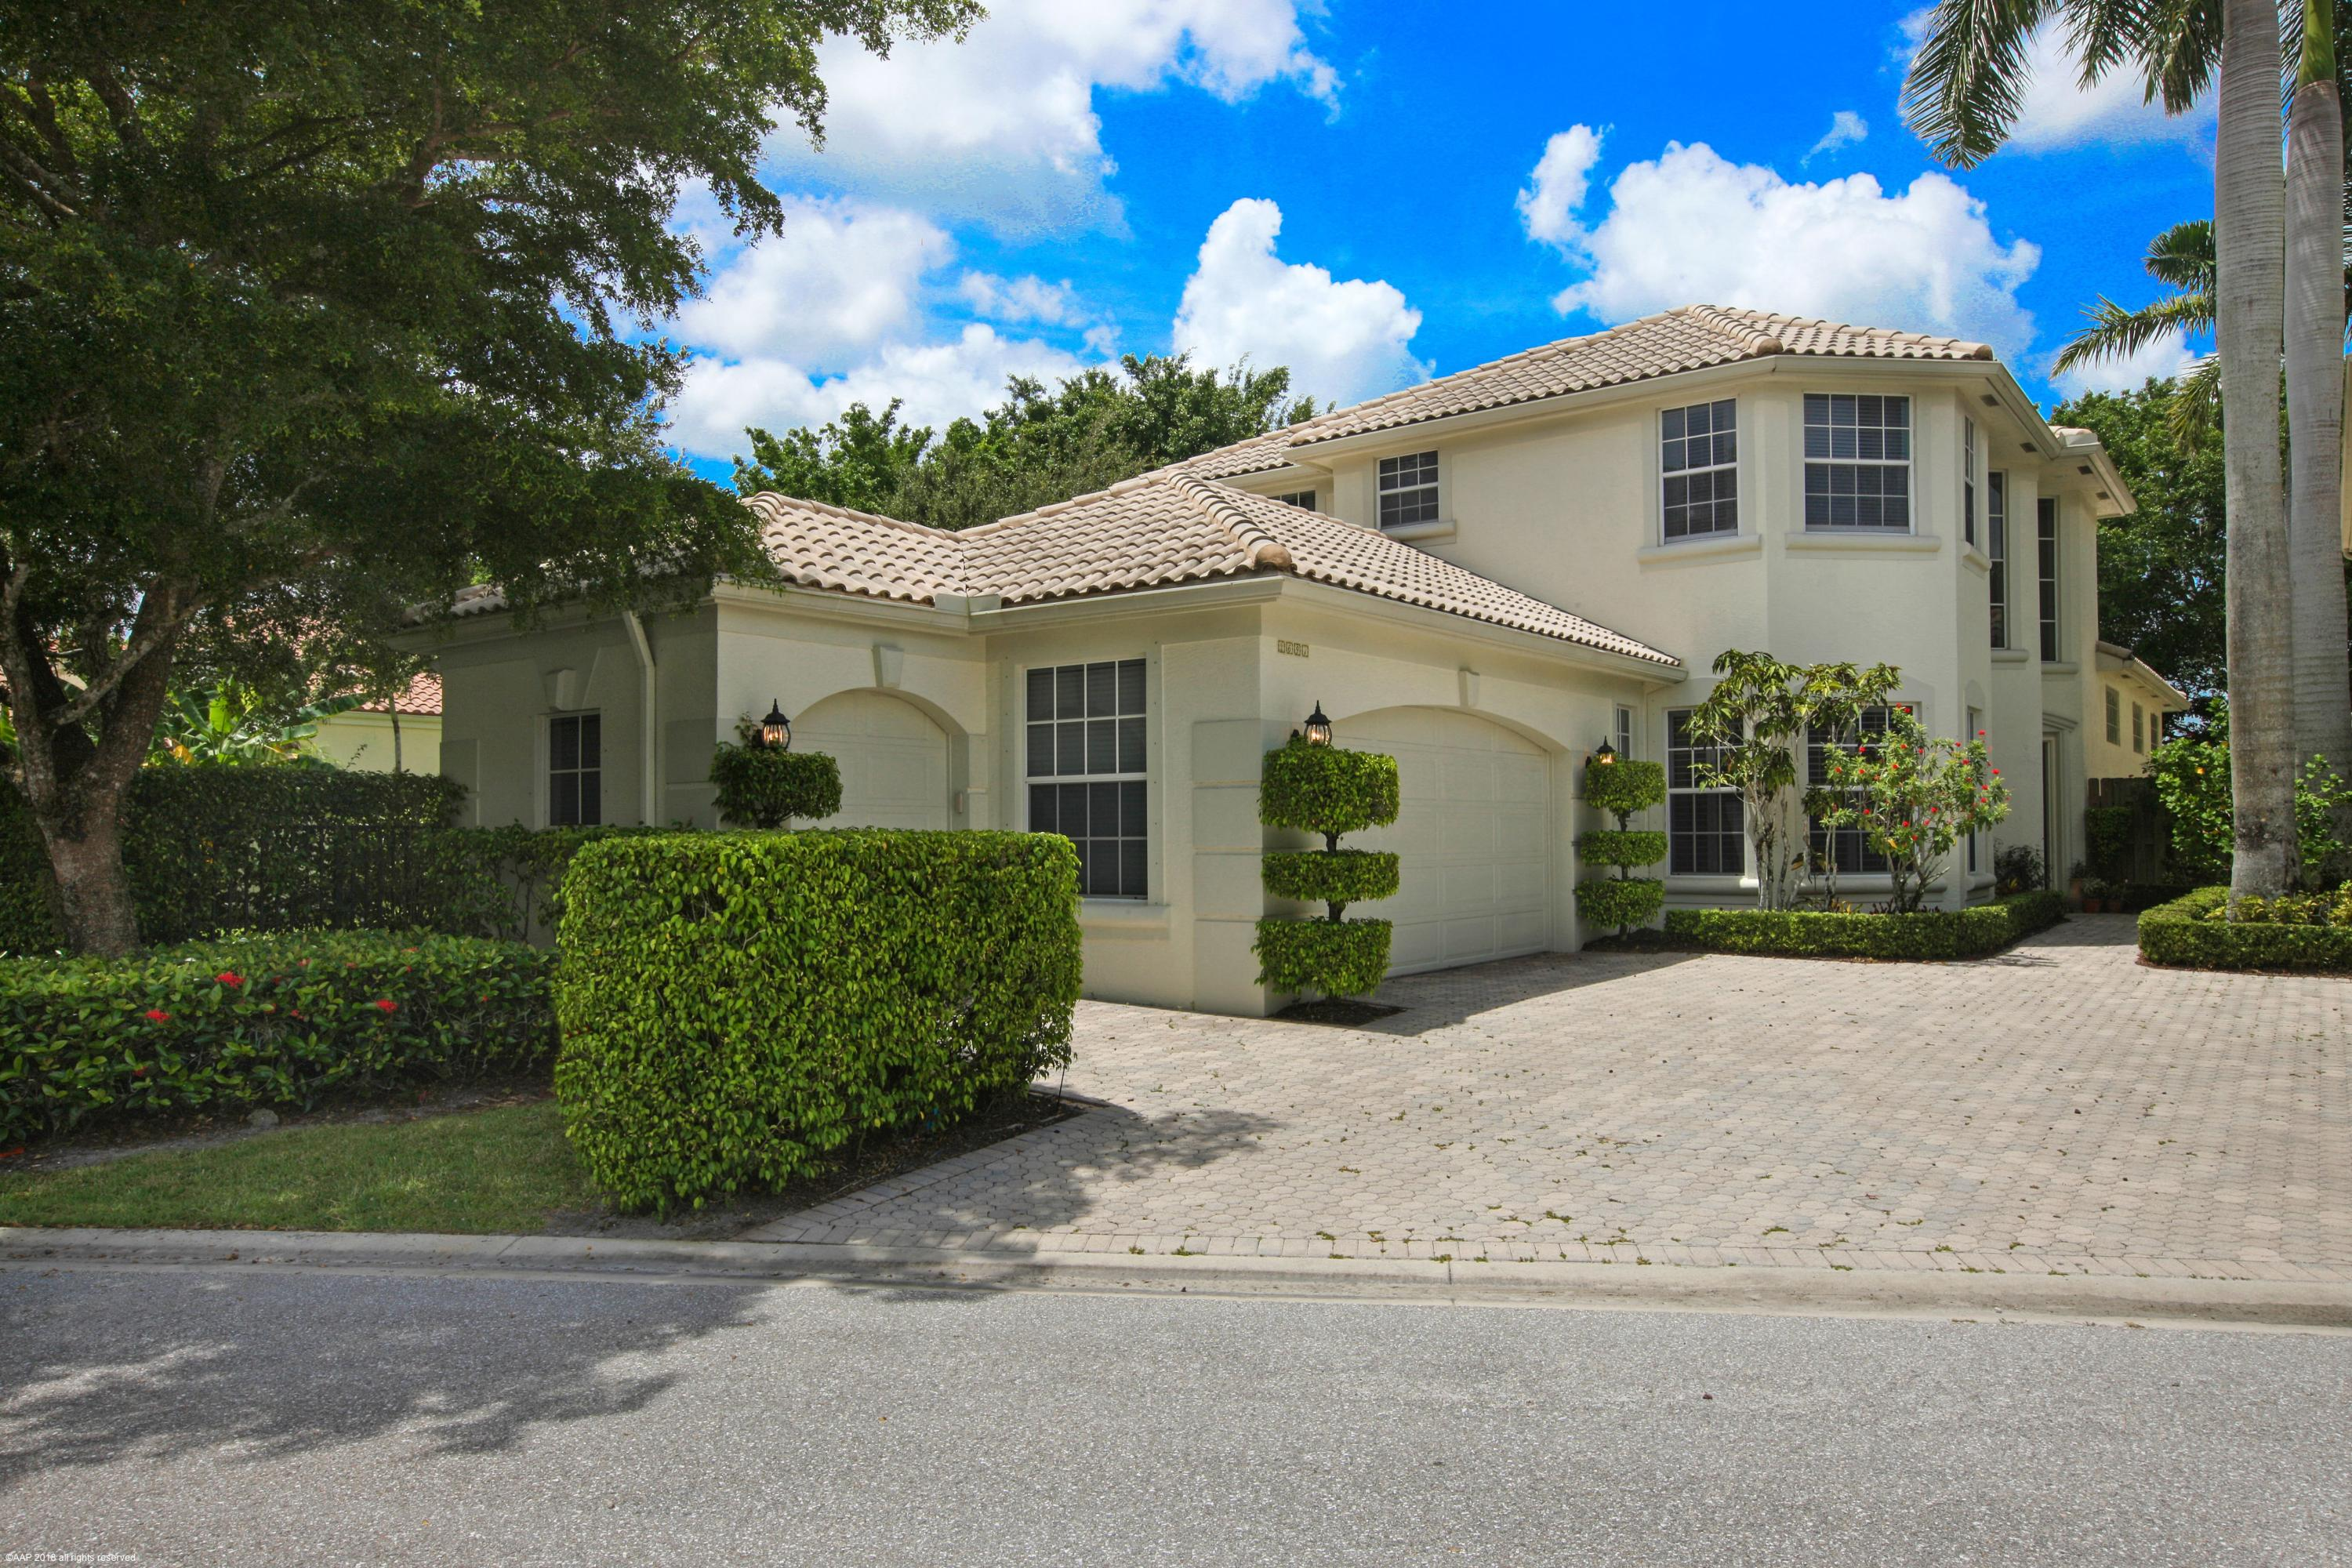 Home for sale in Palm Beach Polo & Cc Wellington Florida